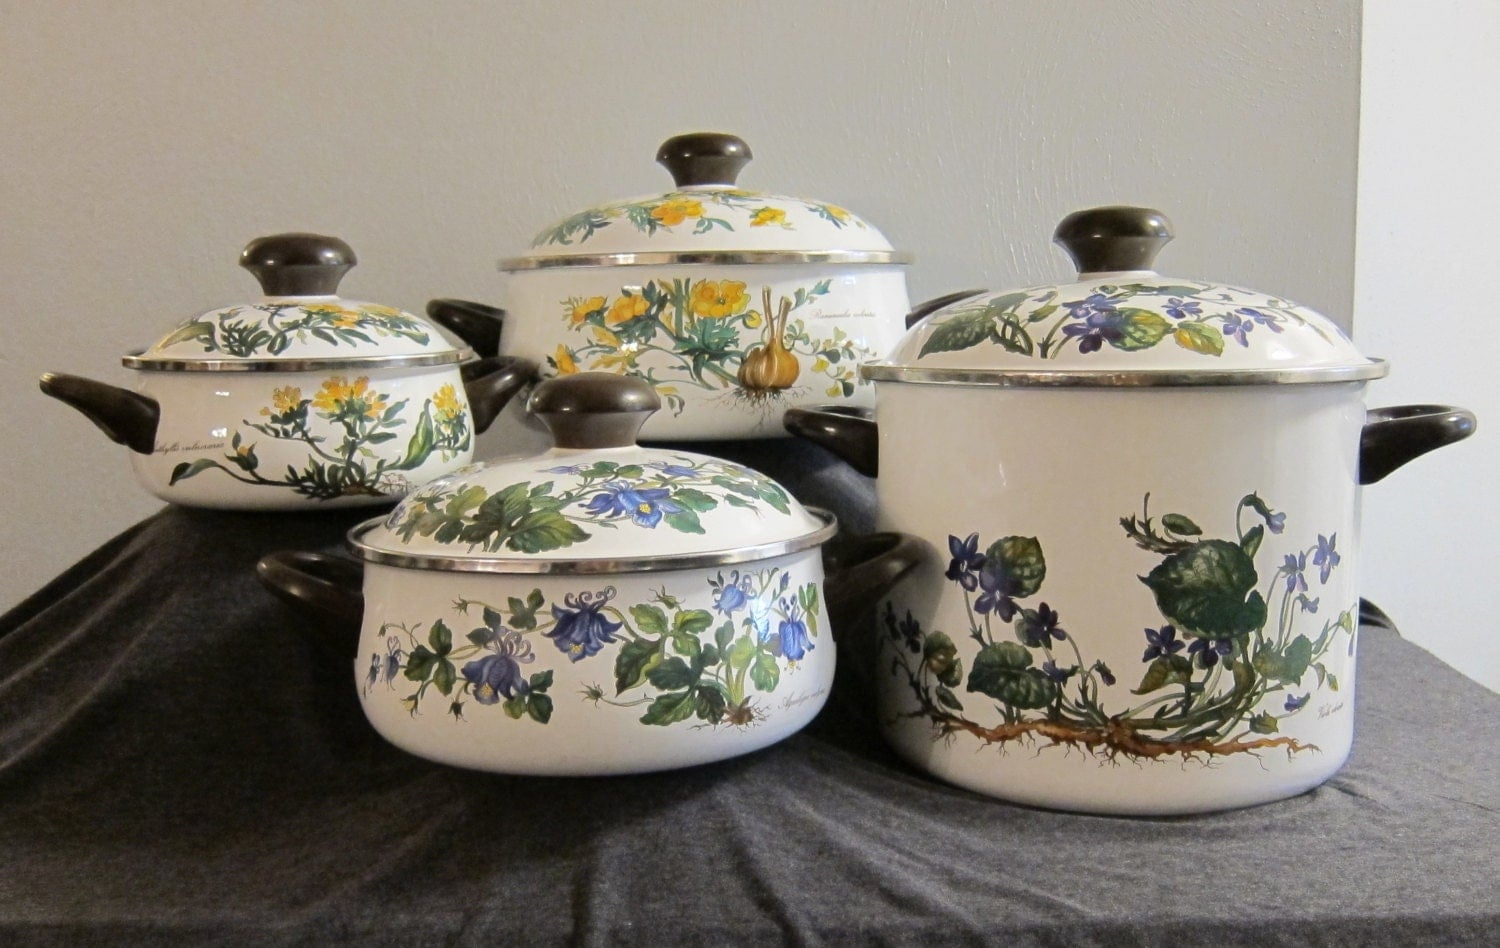 vintage villeroy boch botanika enameled metal cookware set. Black Bedroom Furniture Sets. Home Design Ideas